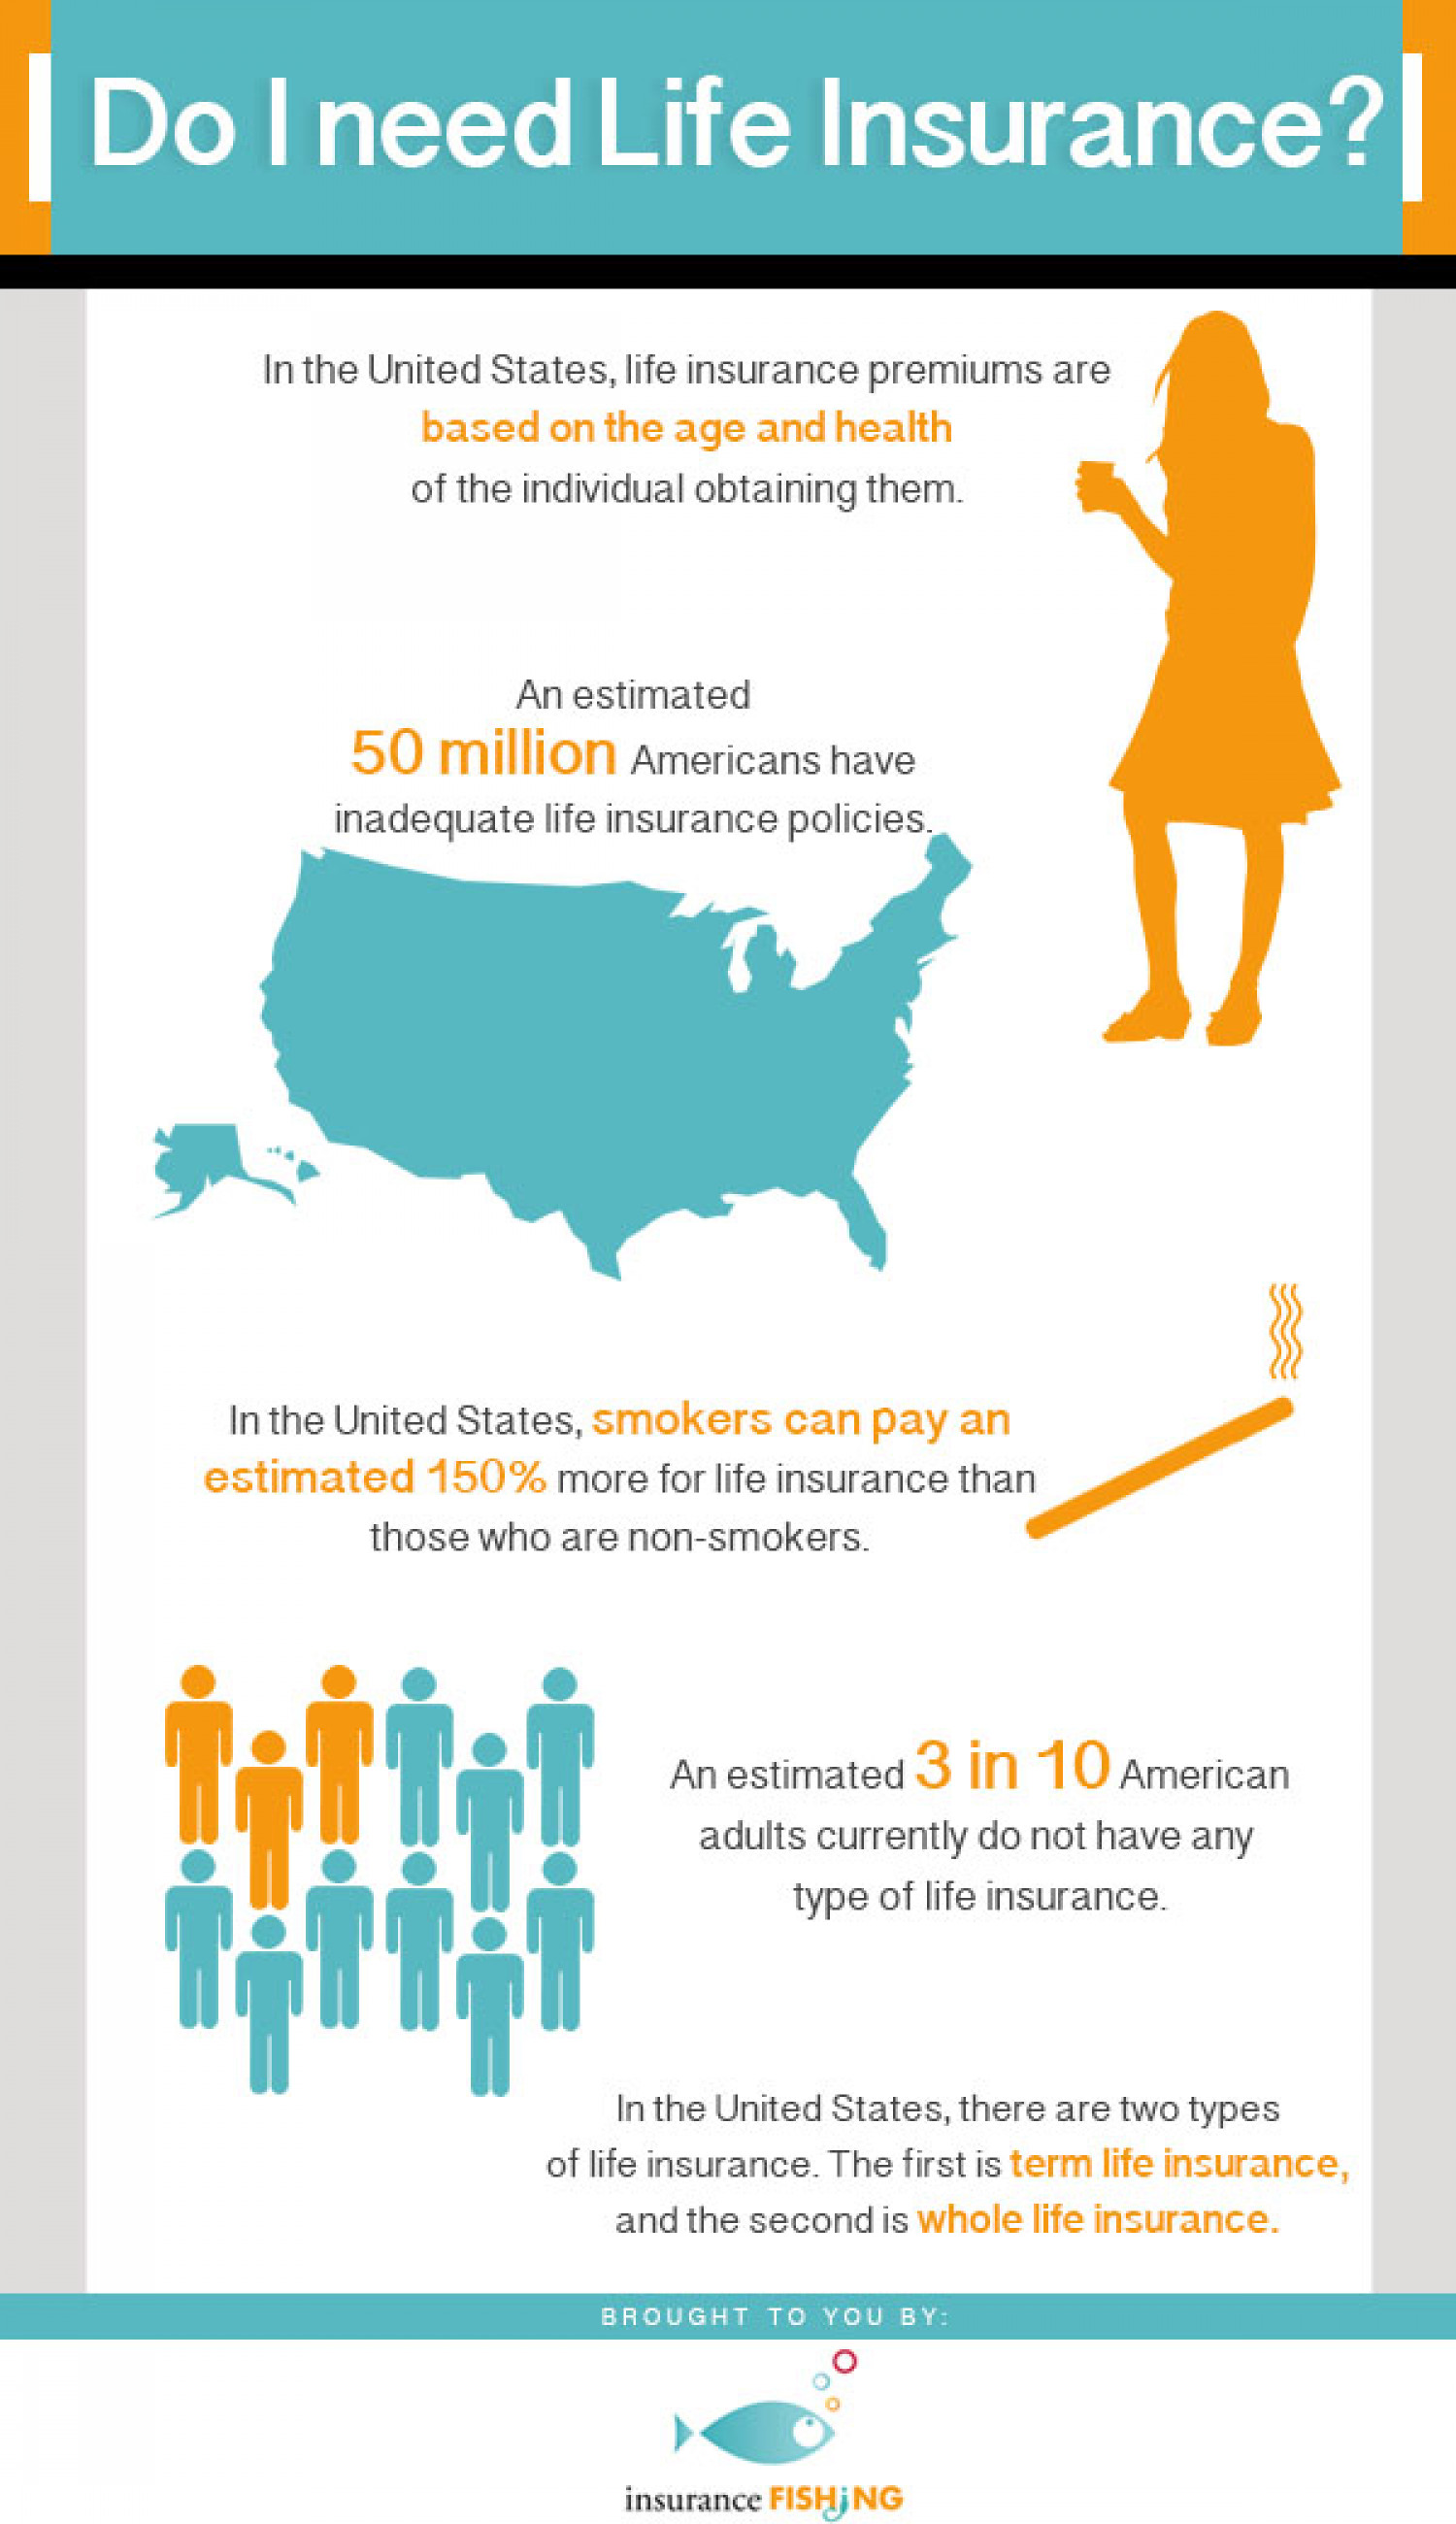 Do I Need Life Insurance? Infographic